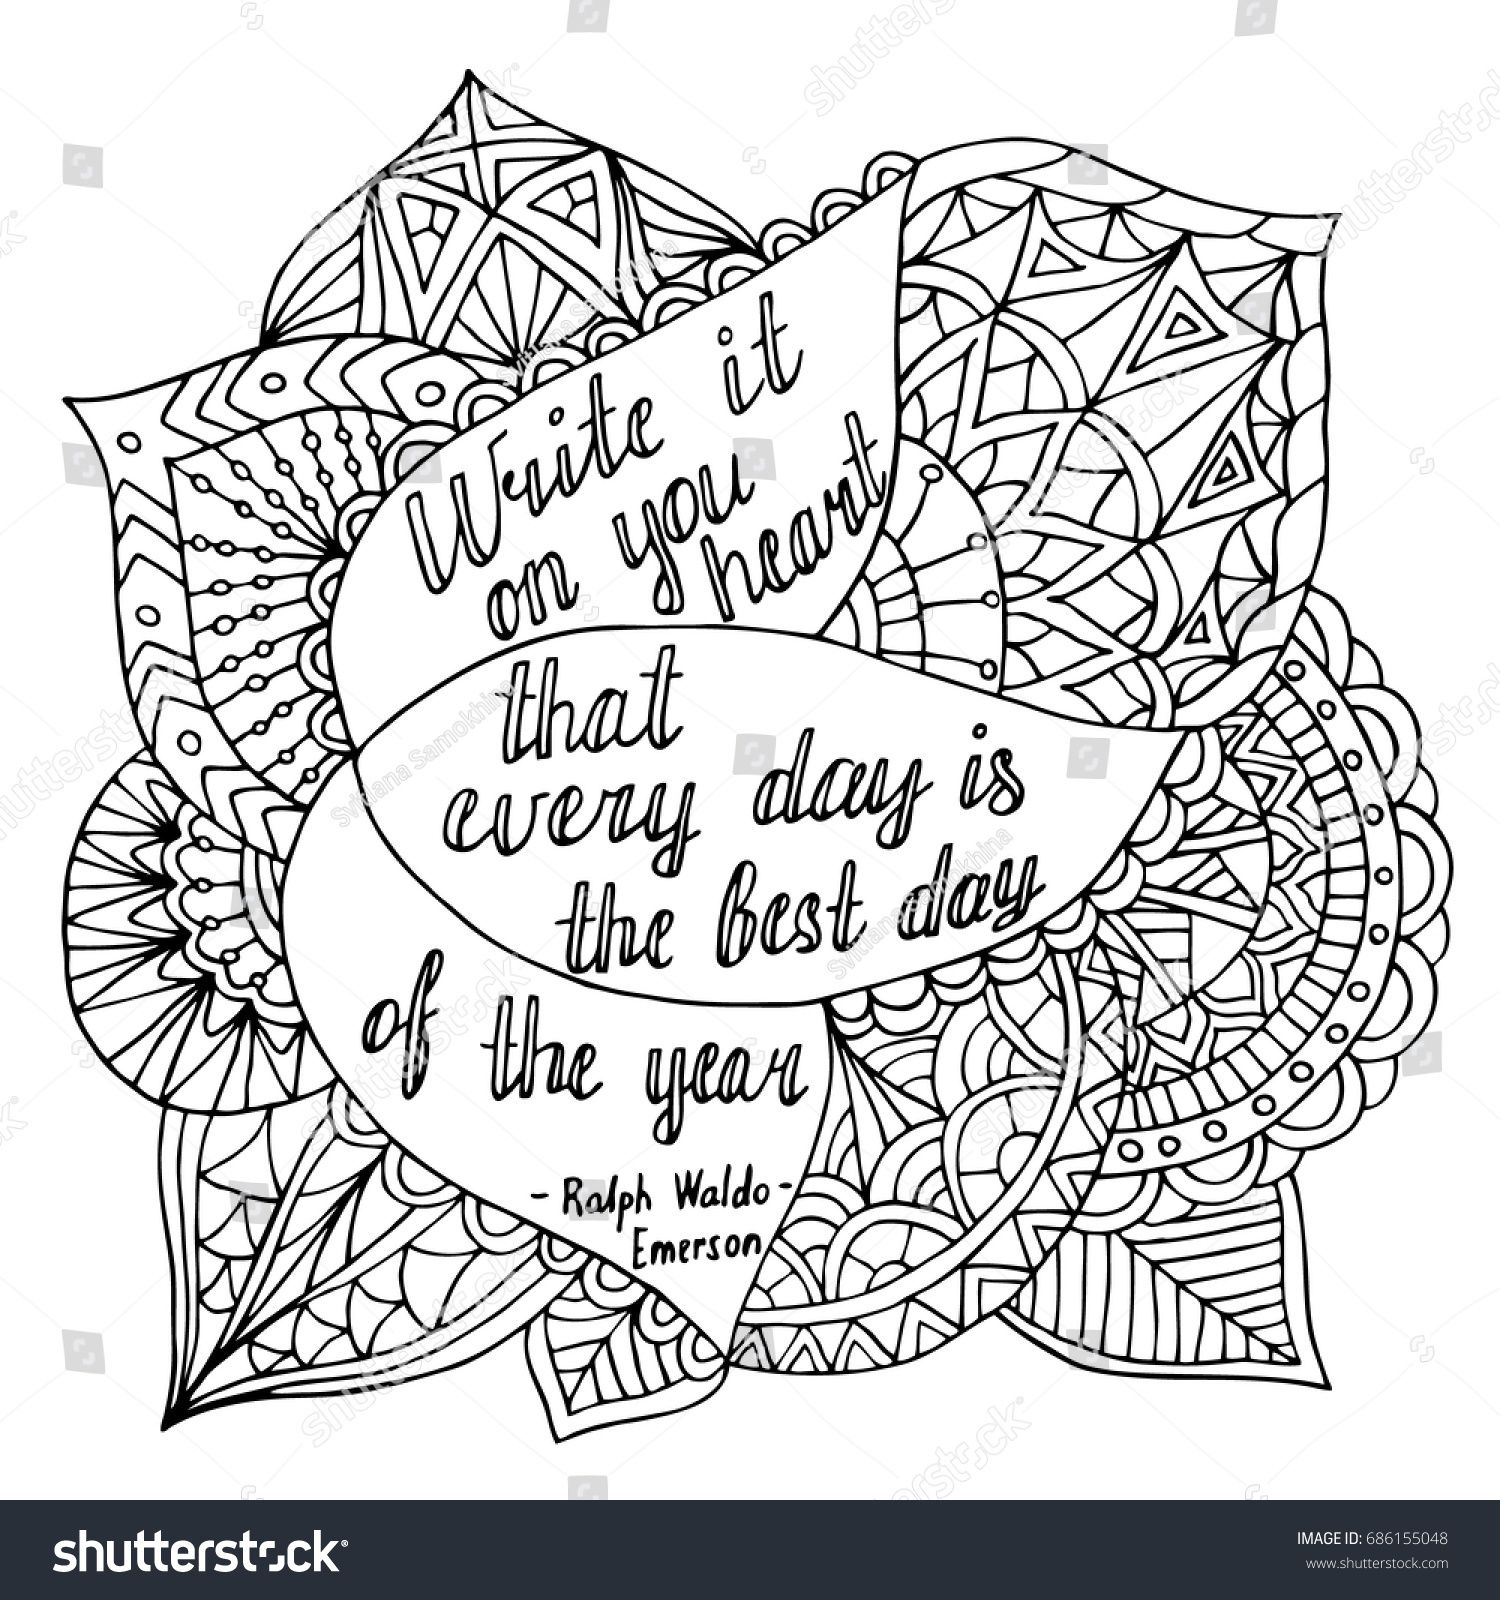 Motivational Coloring Pages | Quote coloring pages, Love ...